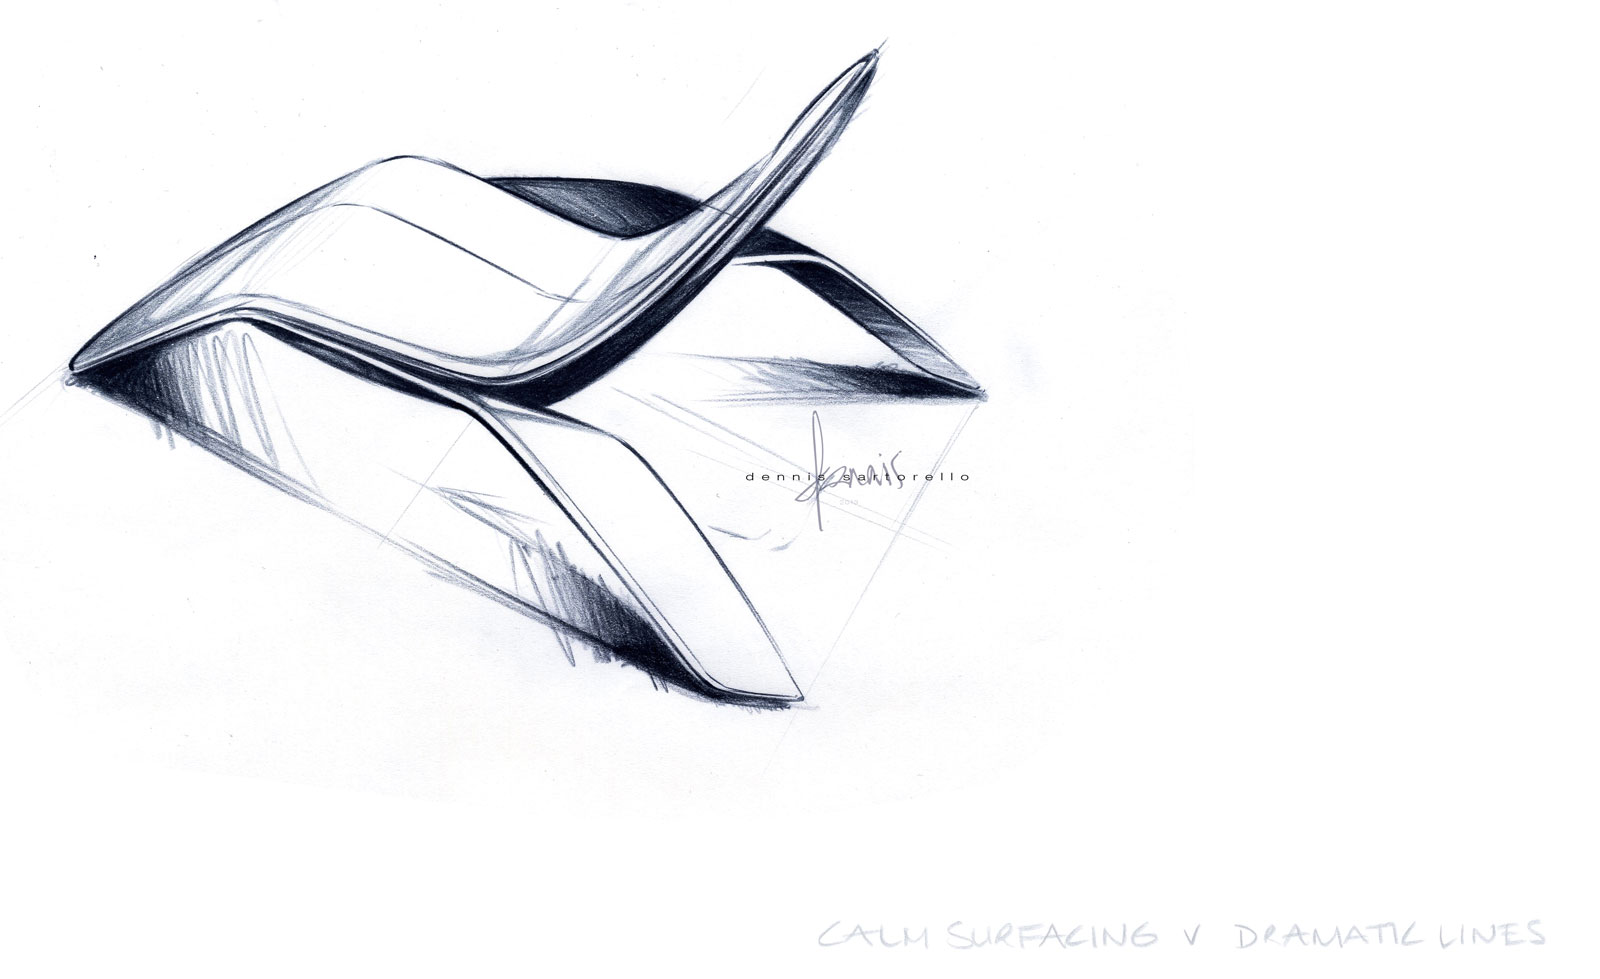 Ford design lounge chair design sketch car body design for Industrial design chair